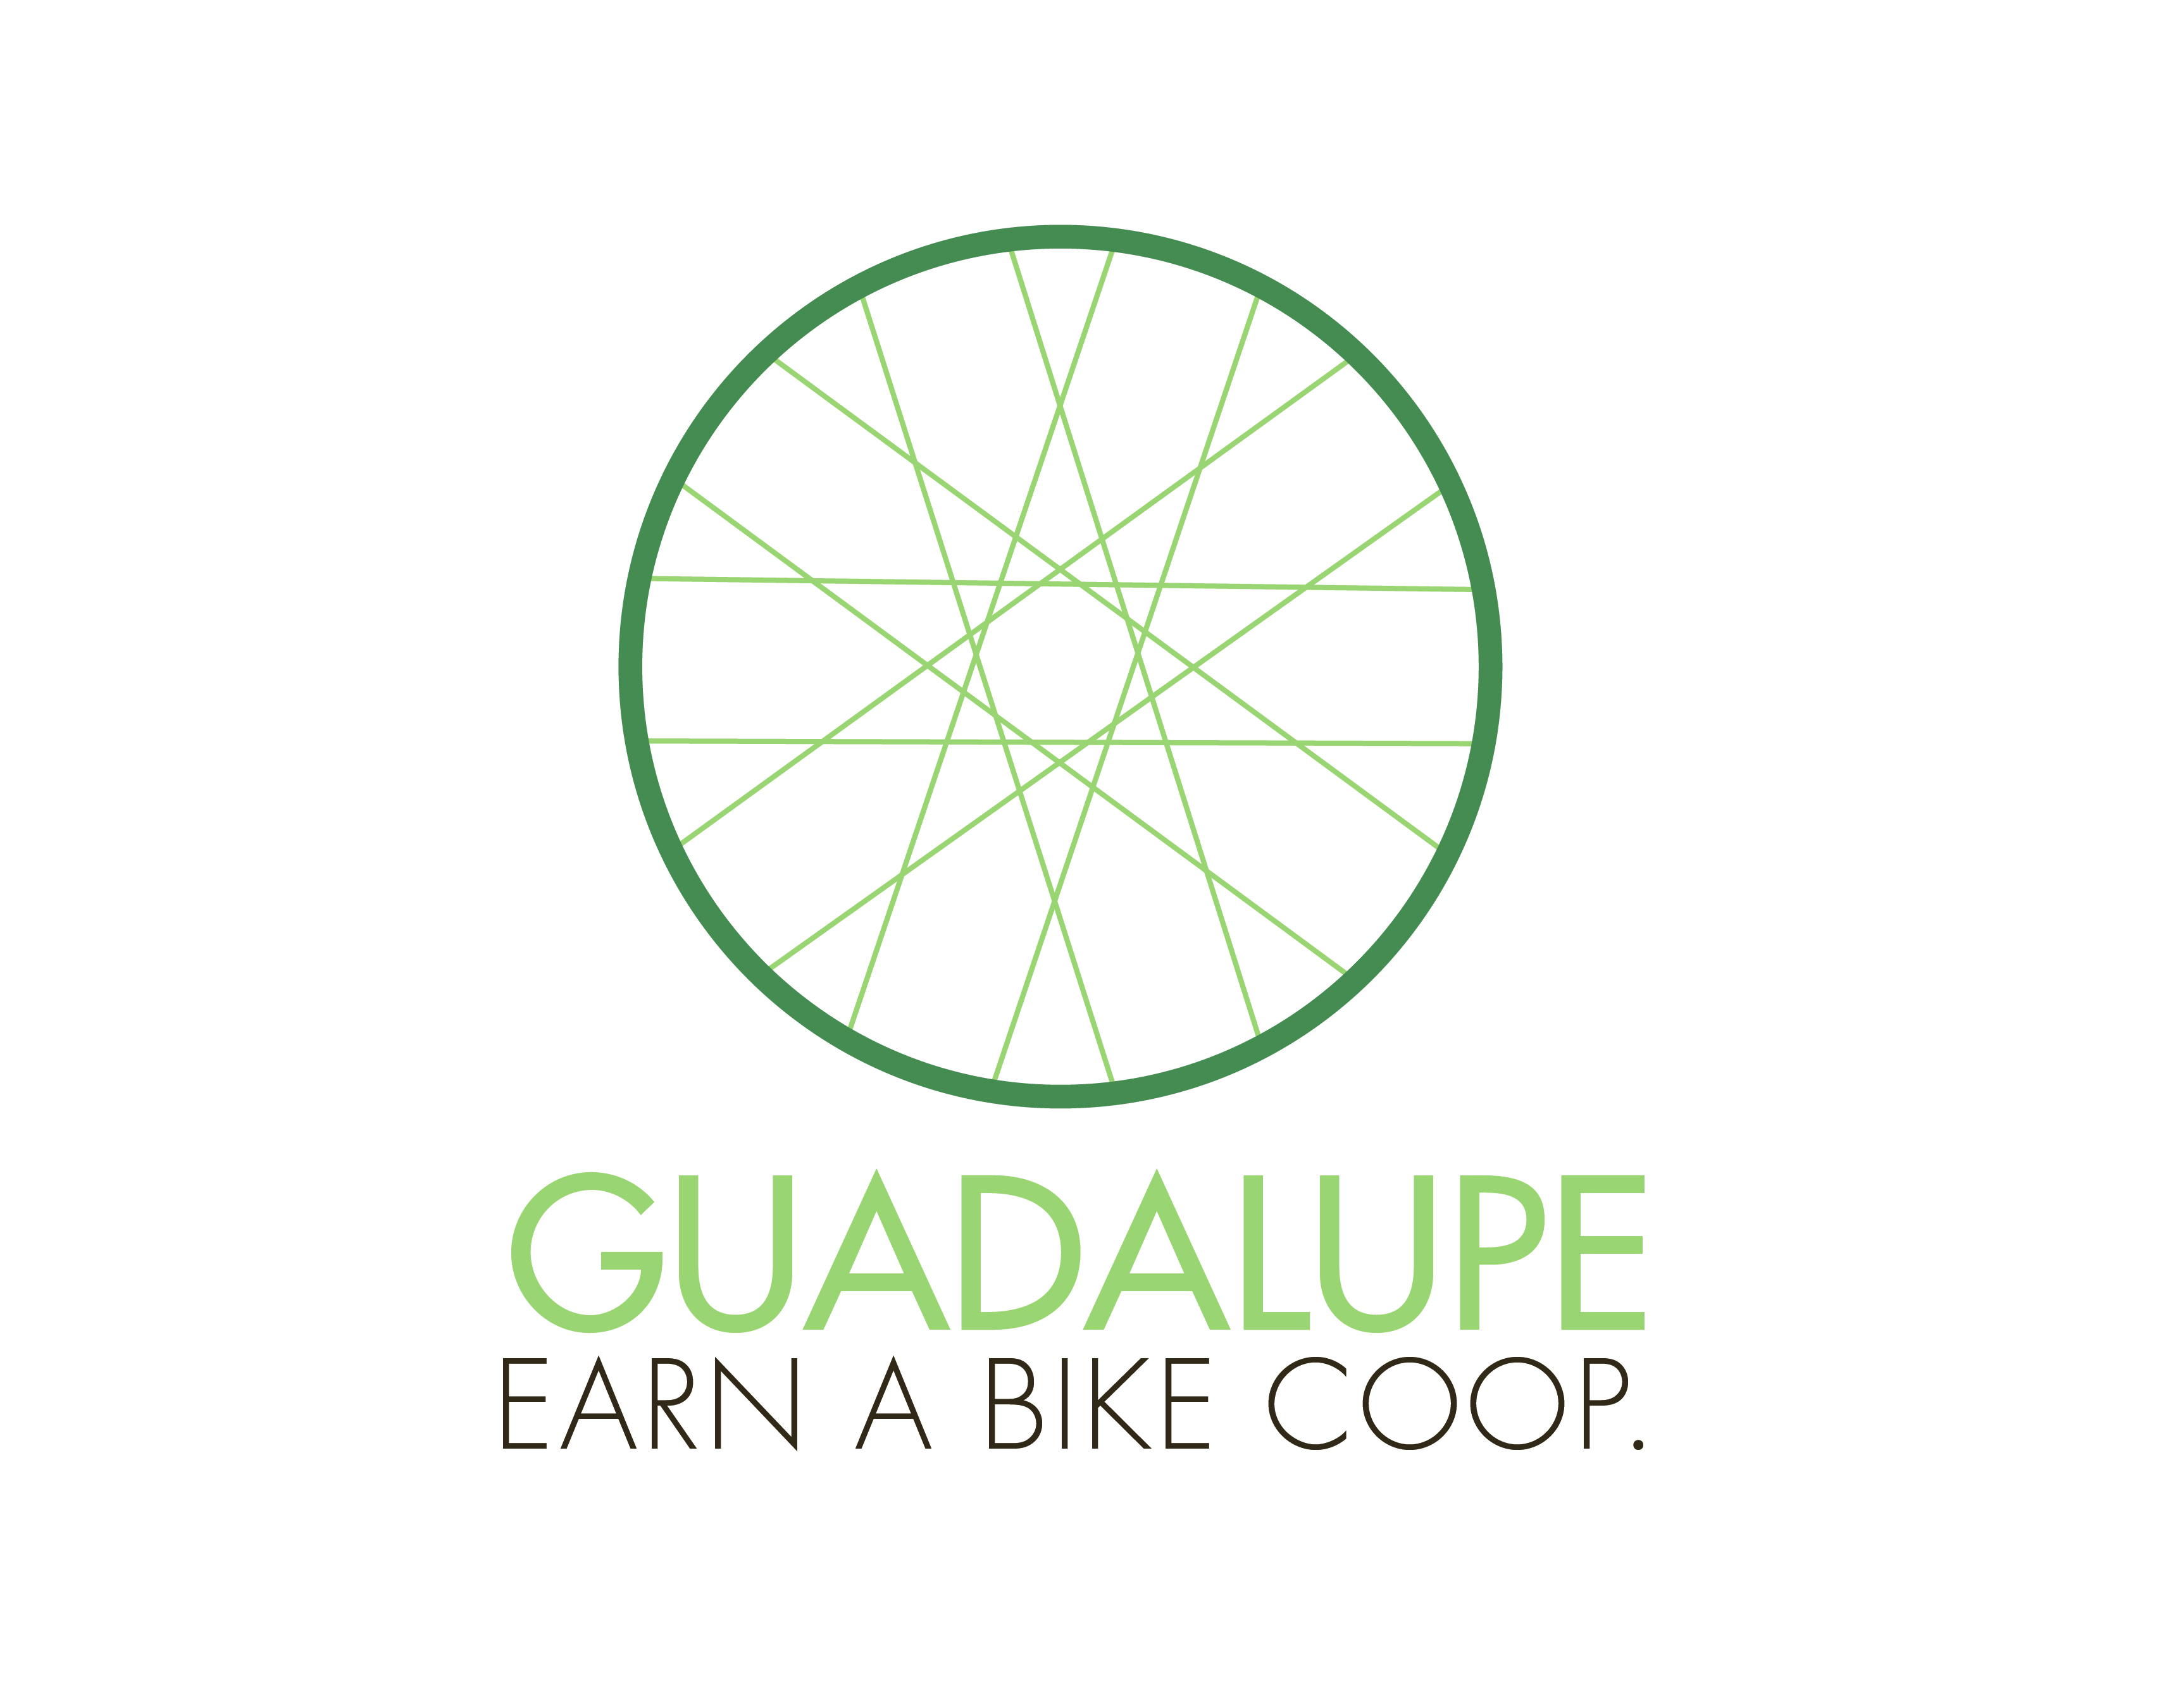 Logo Design by Gretchen Romin - Entry No. 22 in the Logo Design Contest Inspiring Logo Design for Guadalupe Earn a Bike Coop..